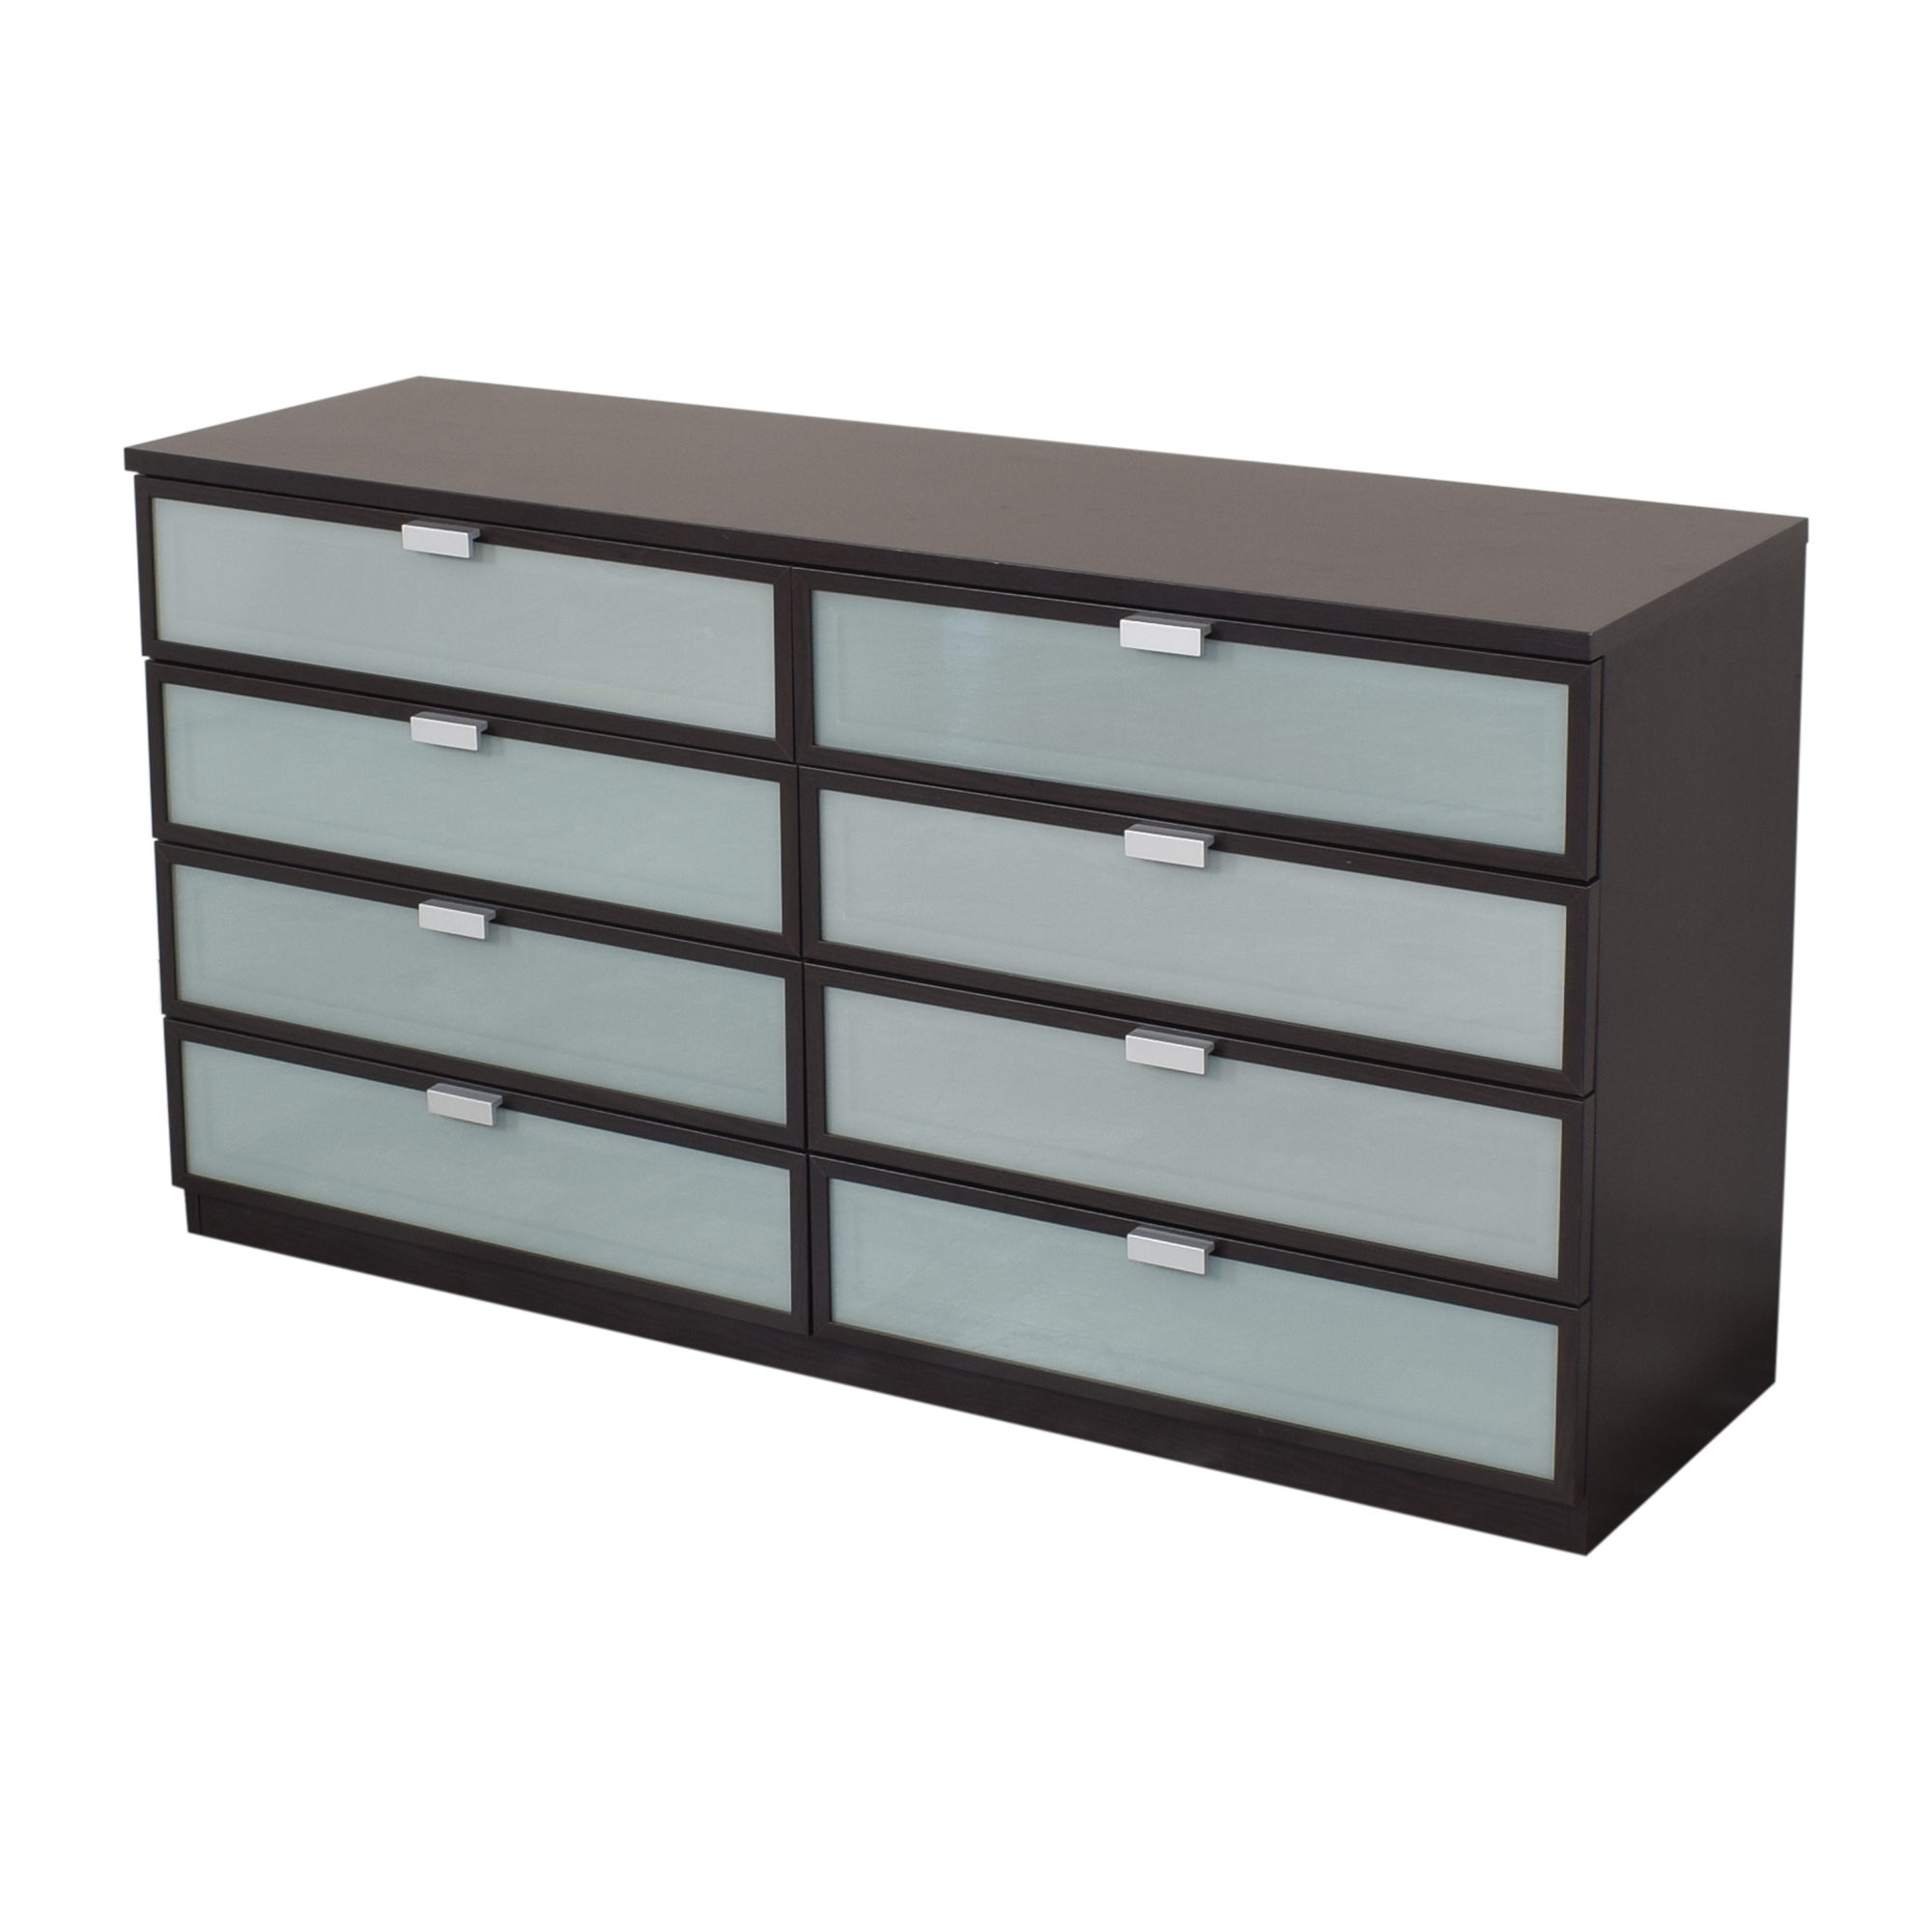 IKEA IKEA HOPEN Eight Drawer Dresser Storage